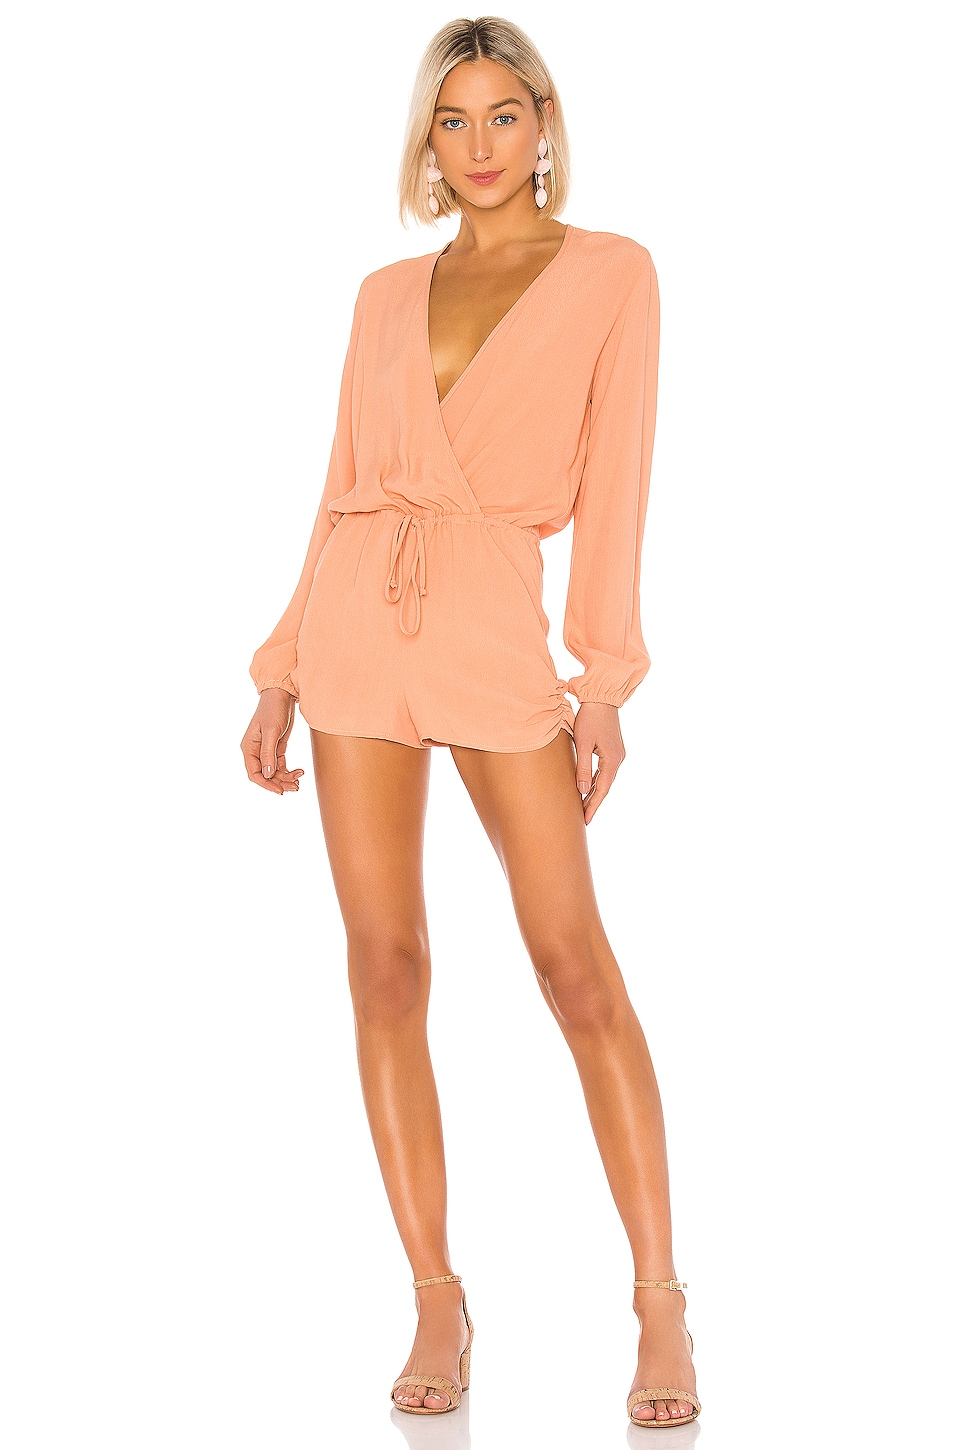 FLYNN SKYE Gina Romper in You're A Peach